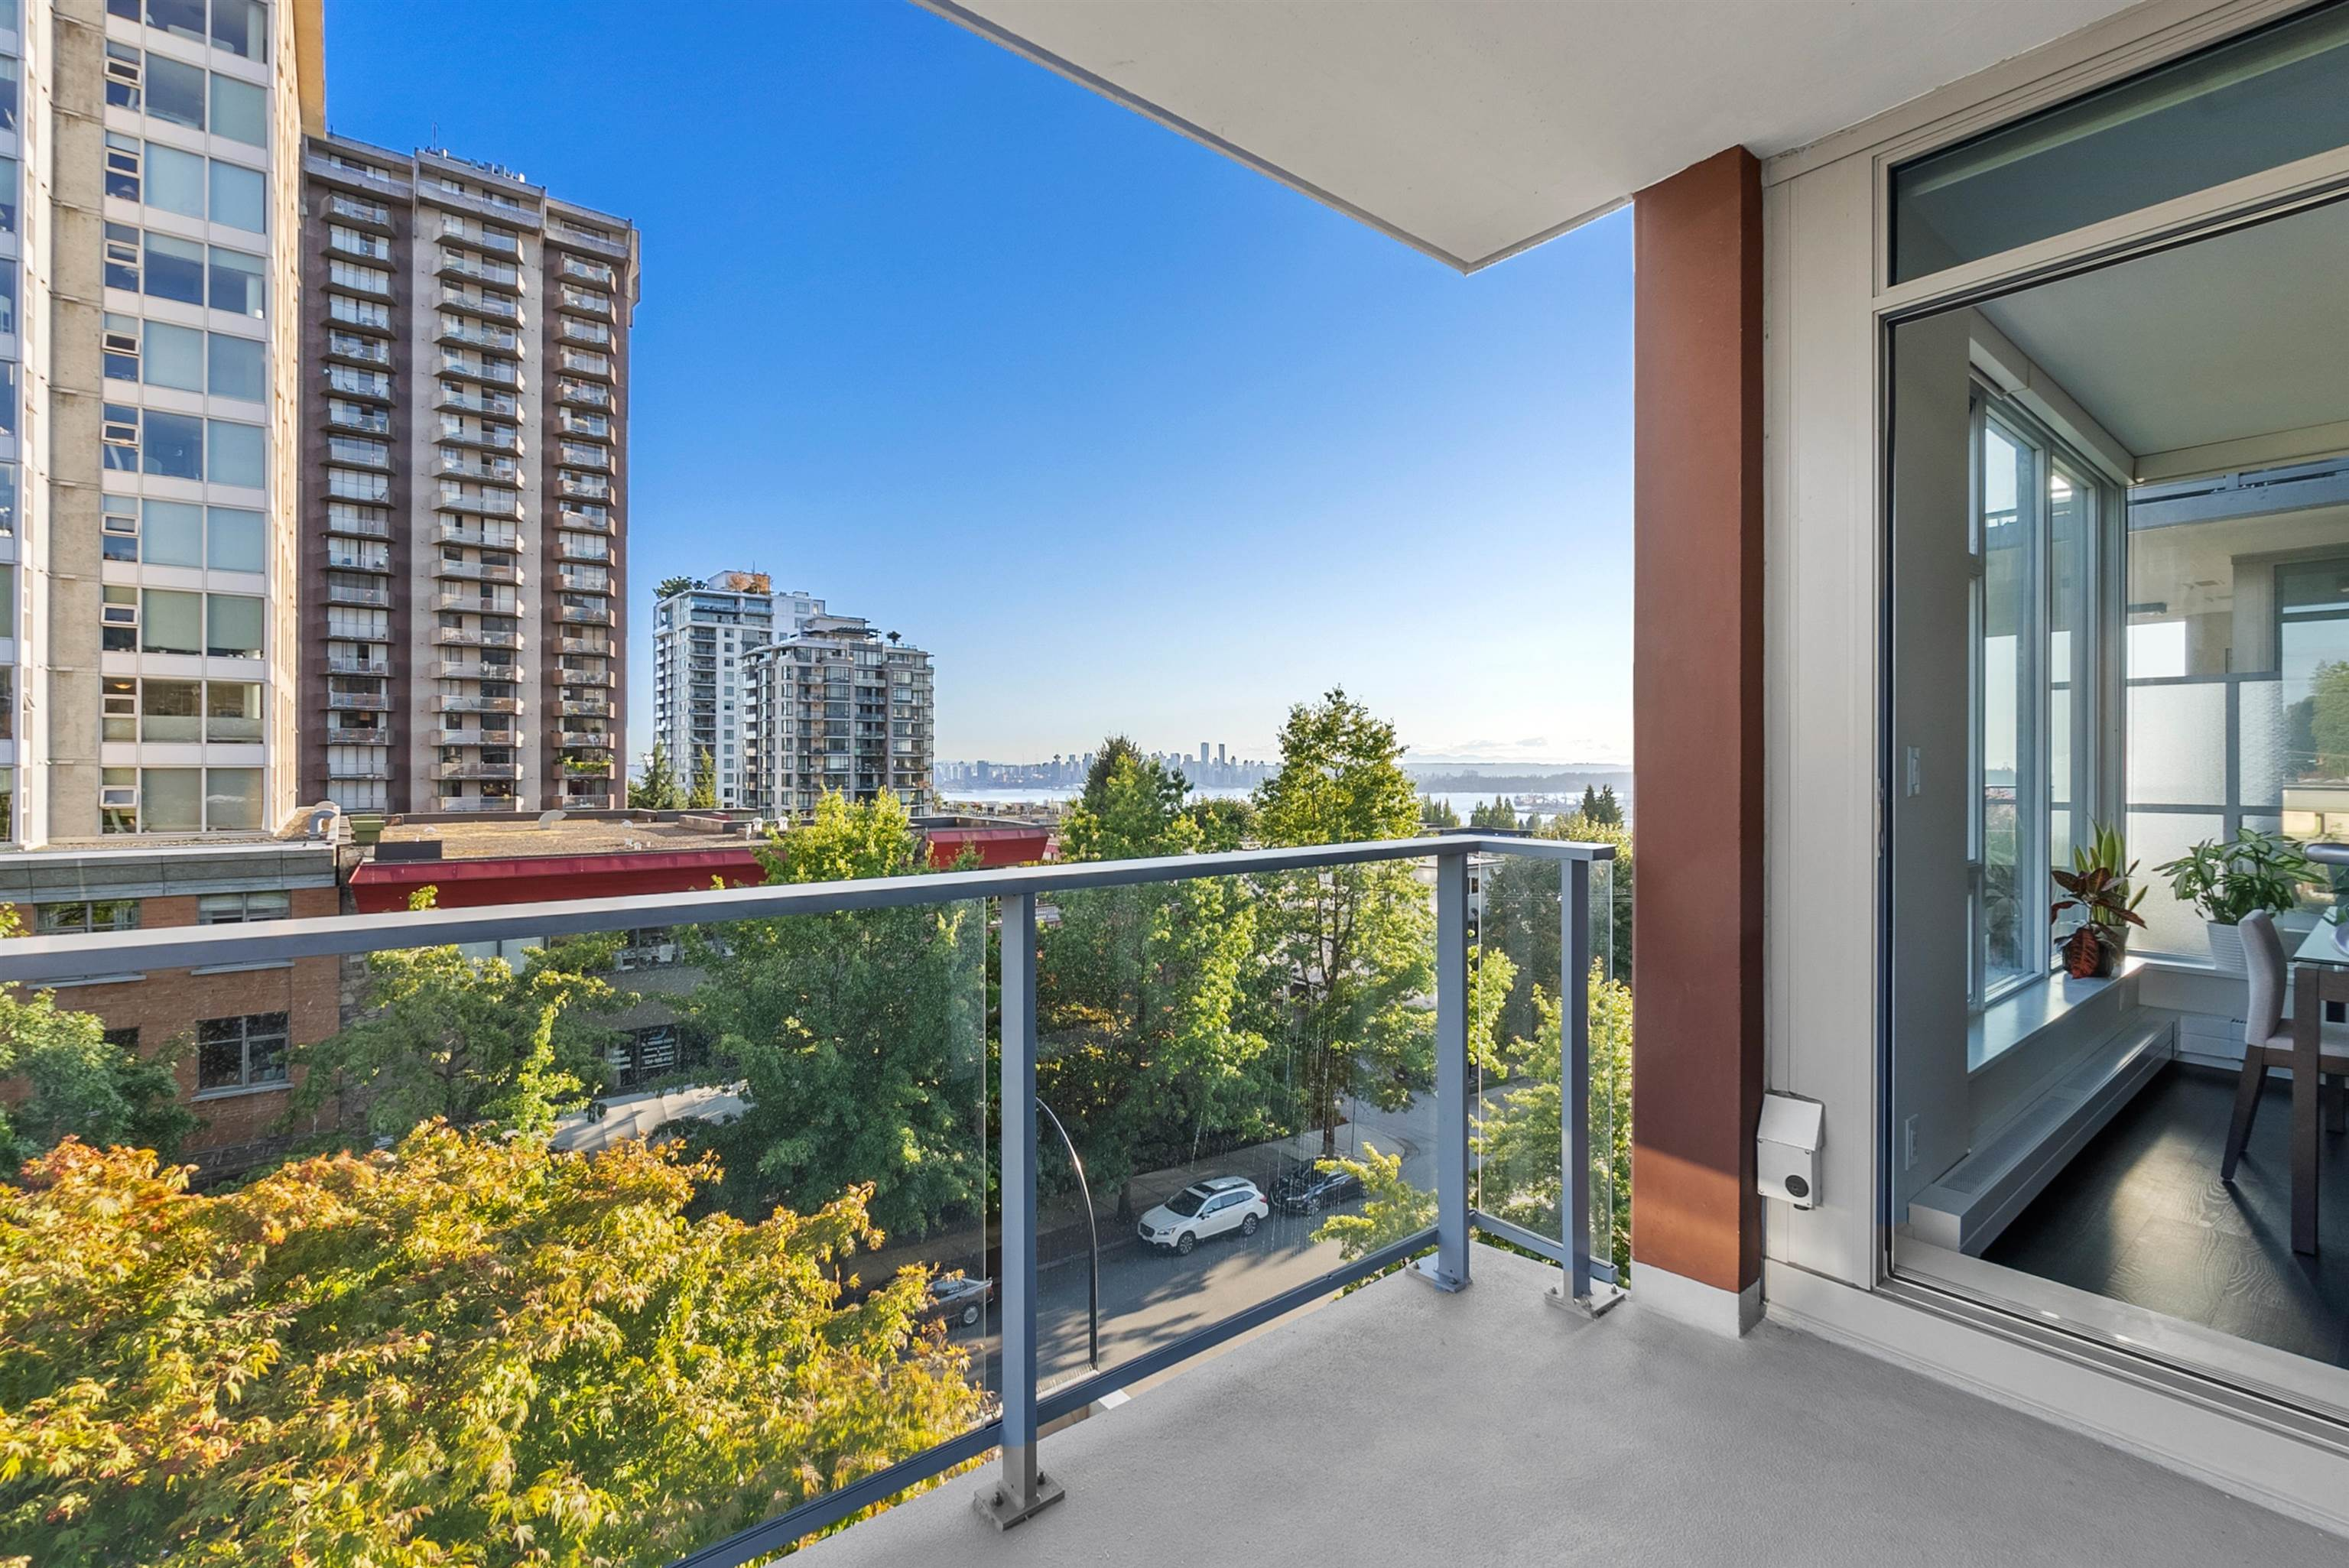 503 150 W 15TH STREET - Central Lonsdale Apartment/Condo for sale, 2 Bedrooms (R2624732) - #21